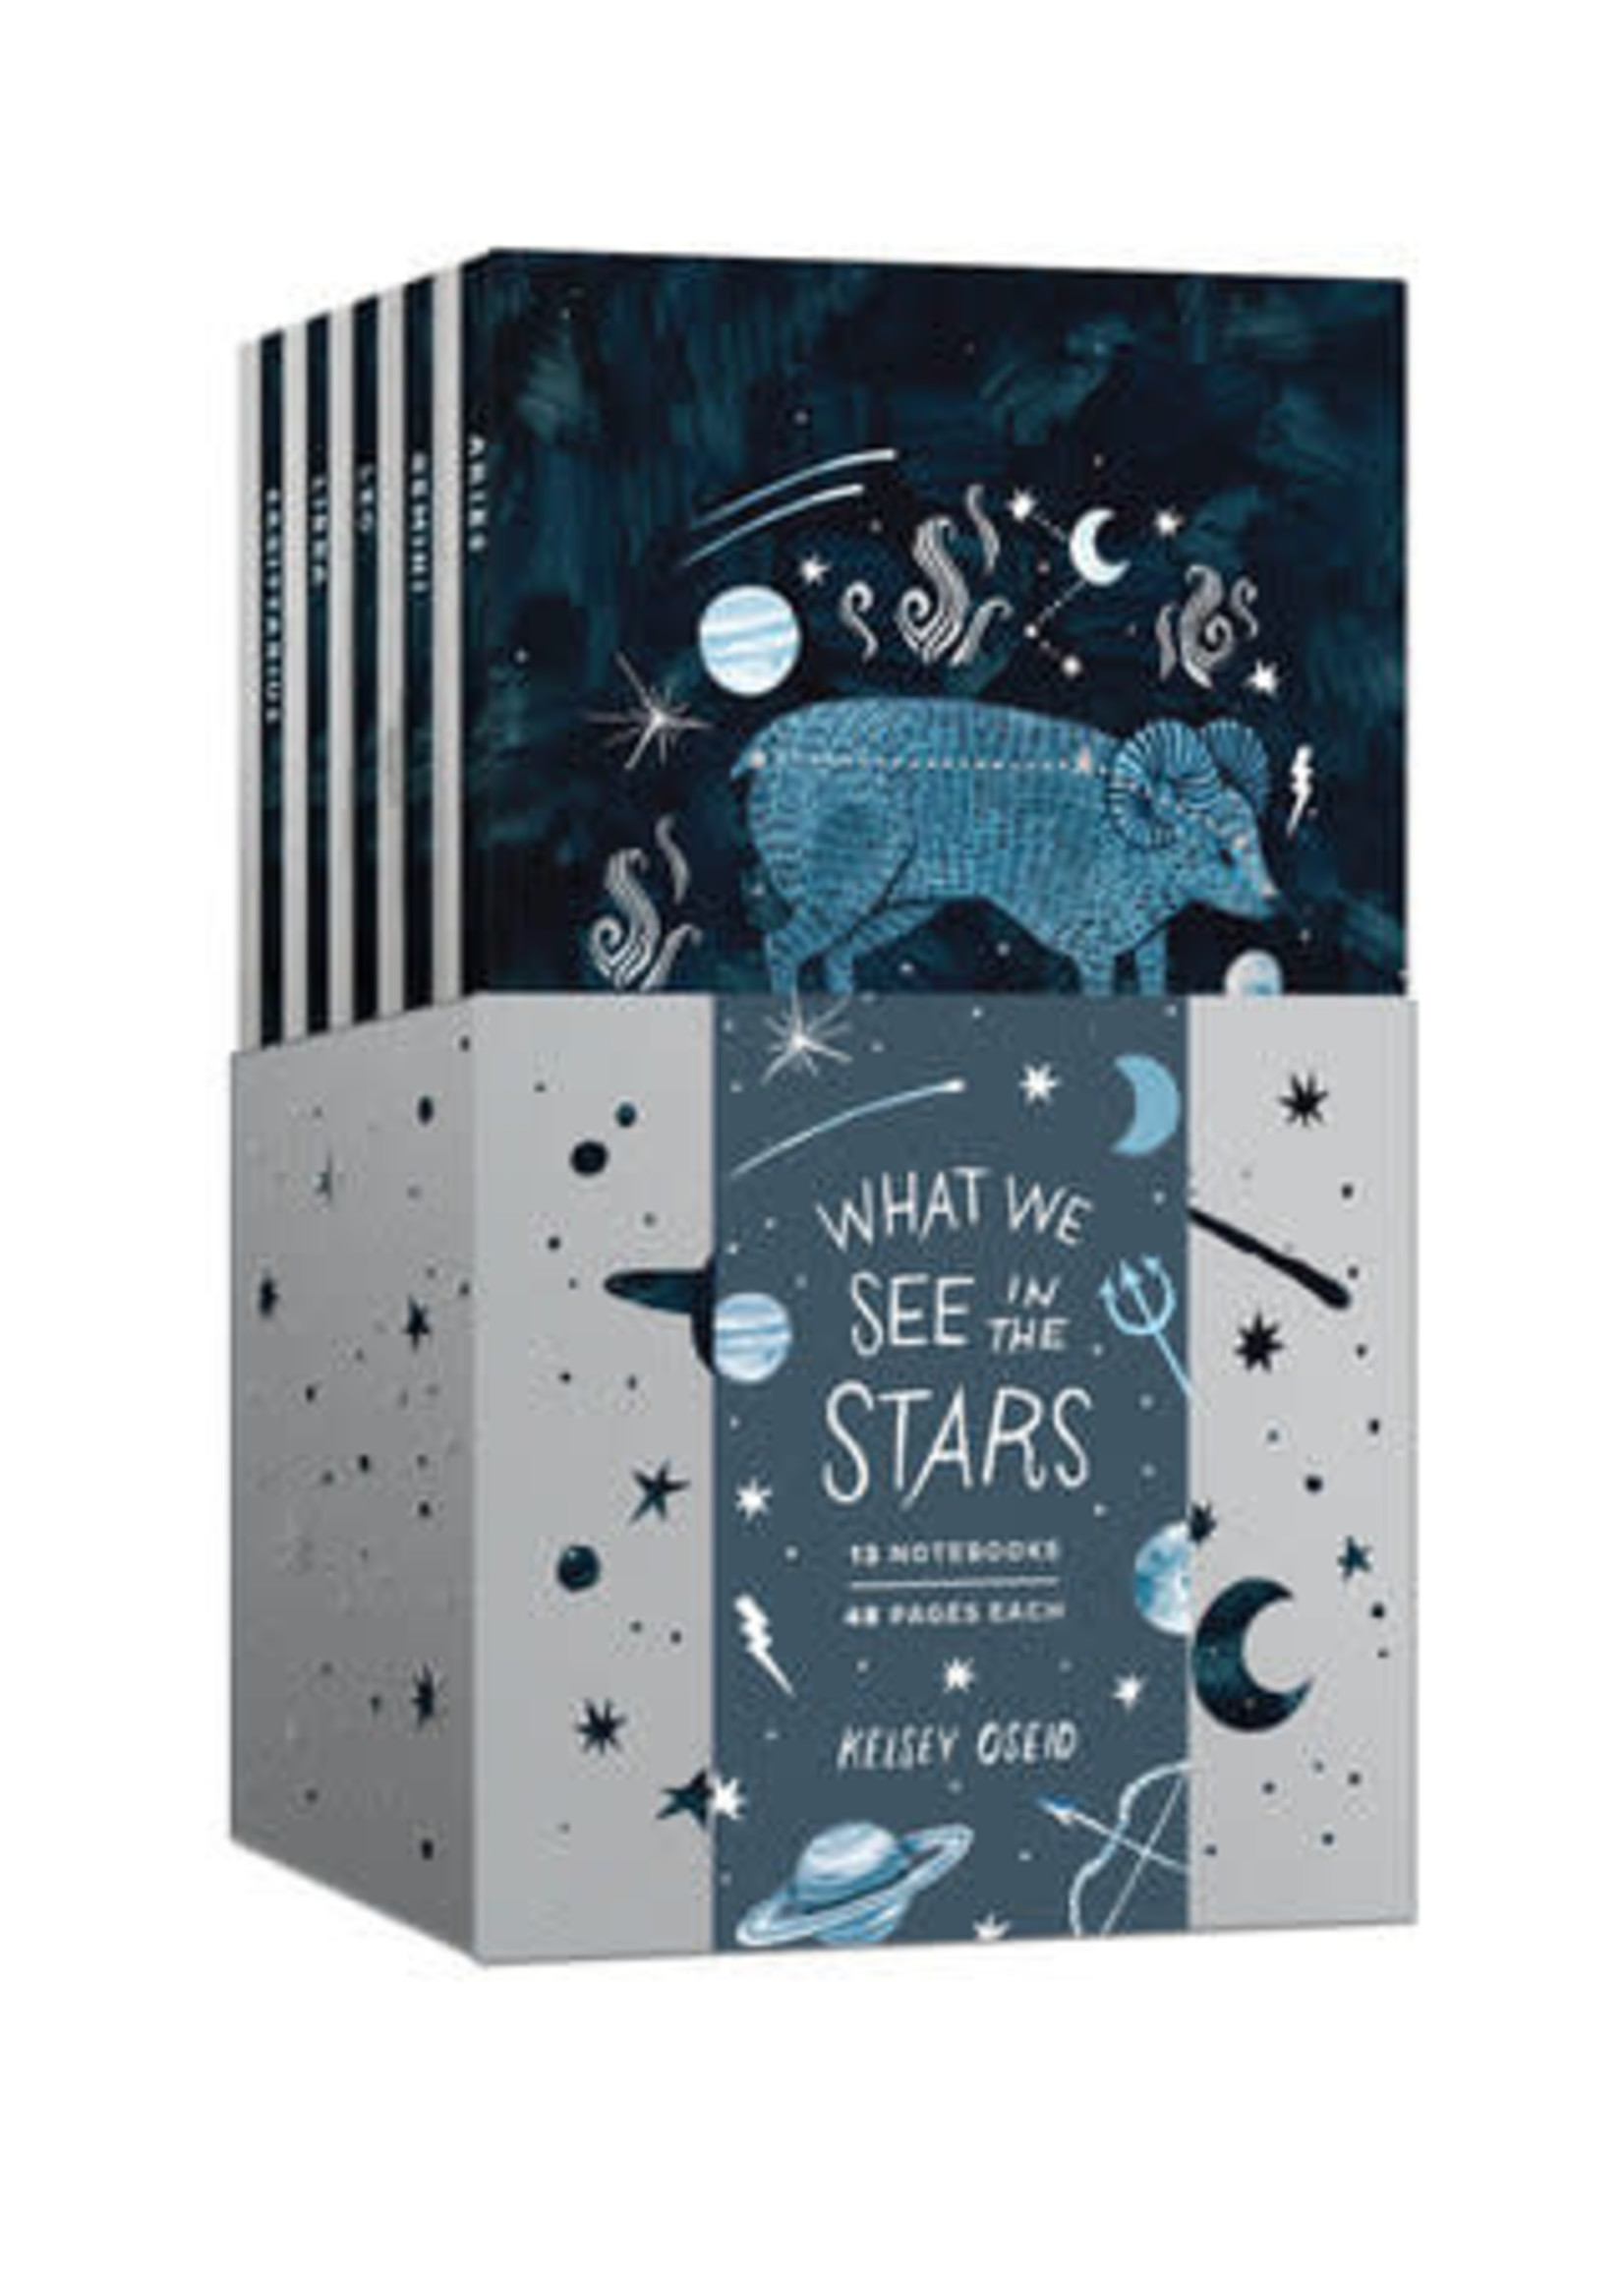 What We See in the Stars A 12-Notebook Set by Kelsey Oseid